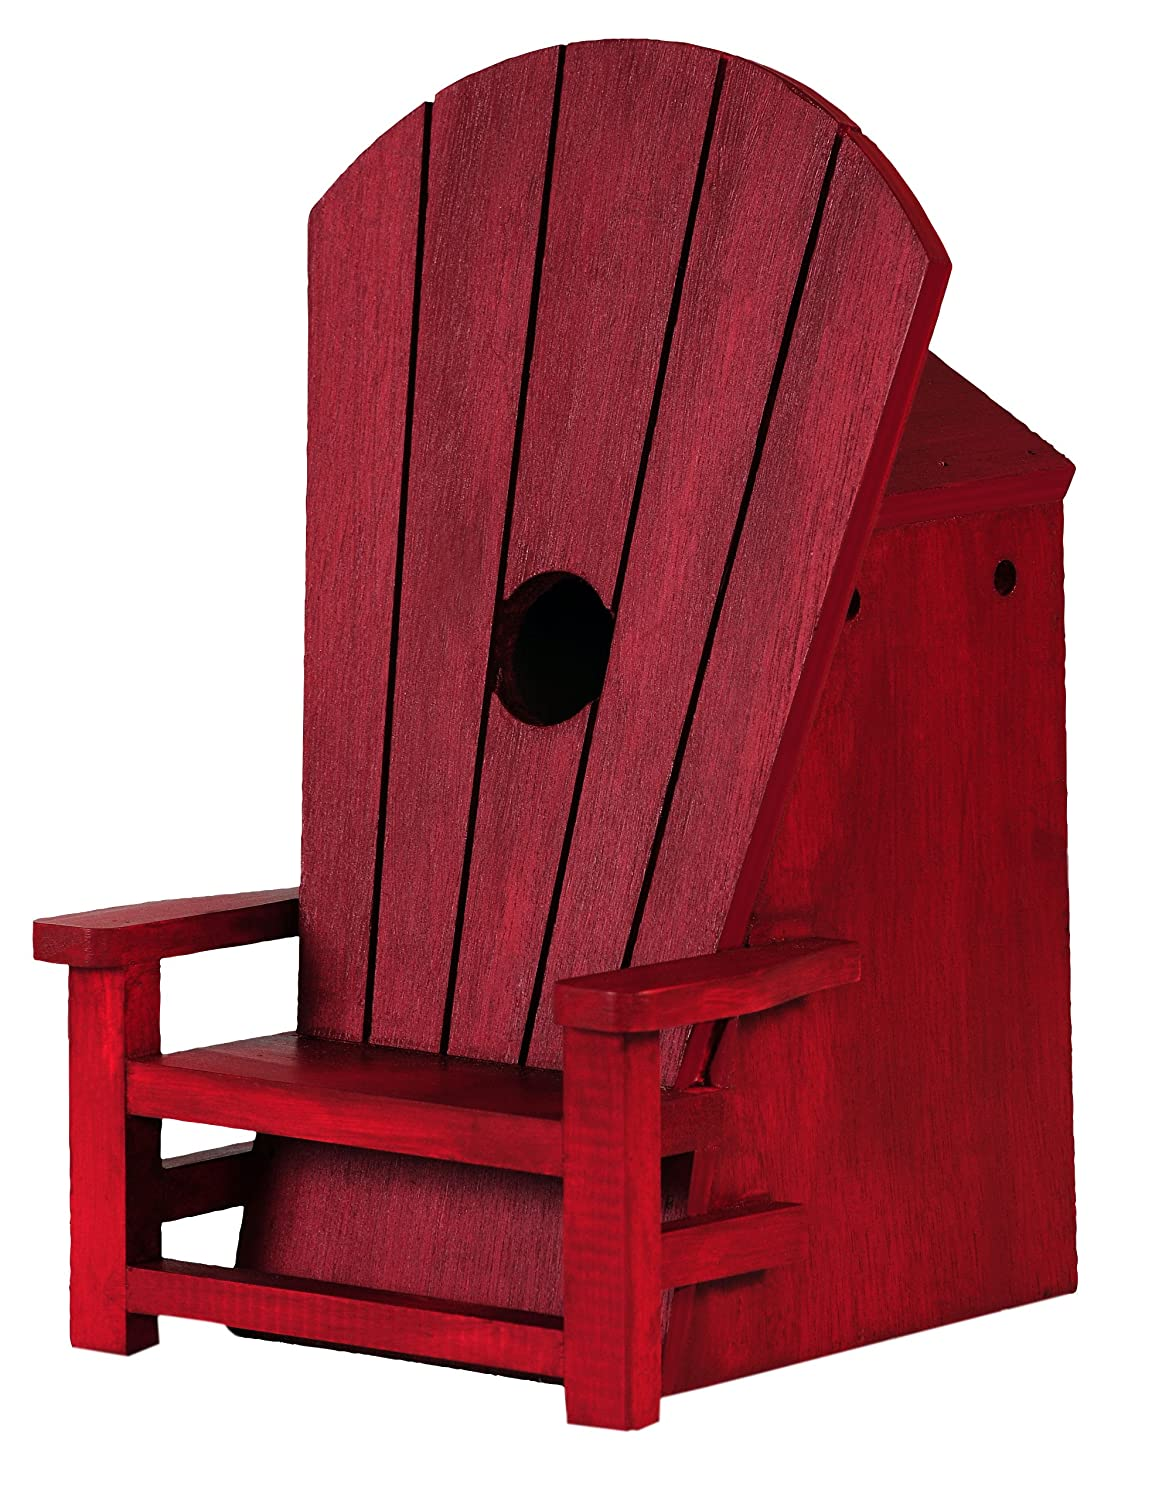 Adirondack Chair Birdhouse OUTSIDE INSIDE 99835